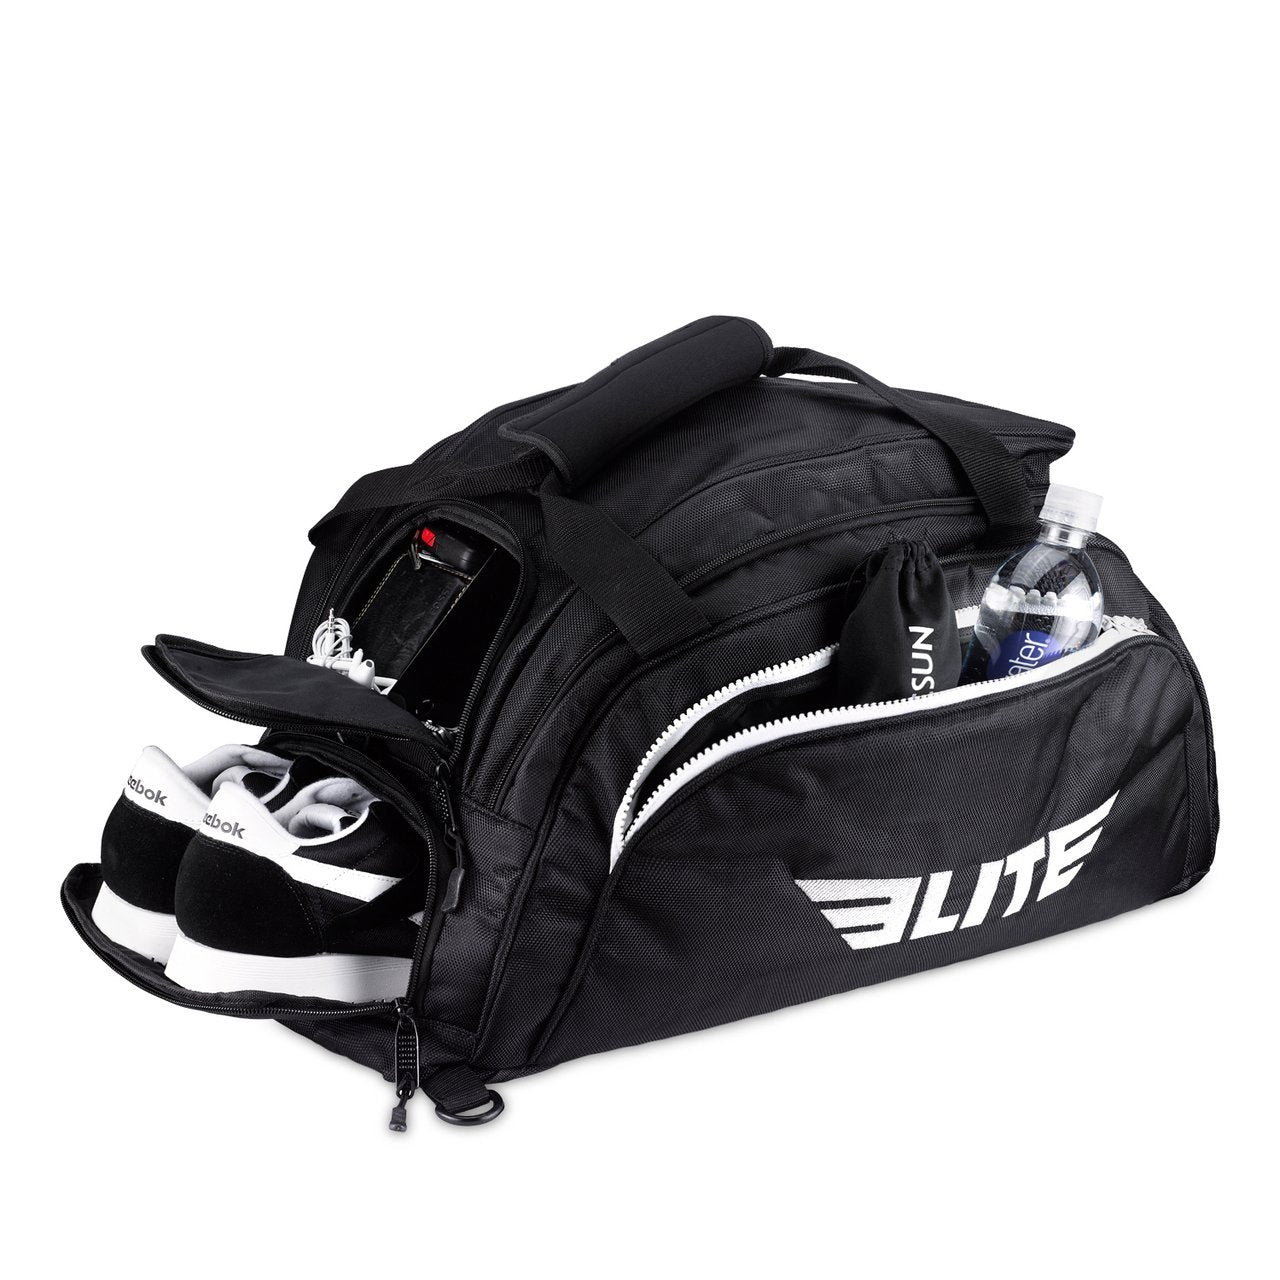 Load image into Gallery viewer, Elite Sports Warrior Series Black Large Duffel Boxing Gear Gym Bag & Backpack